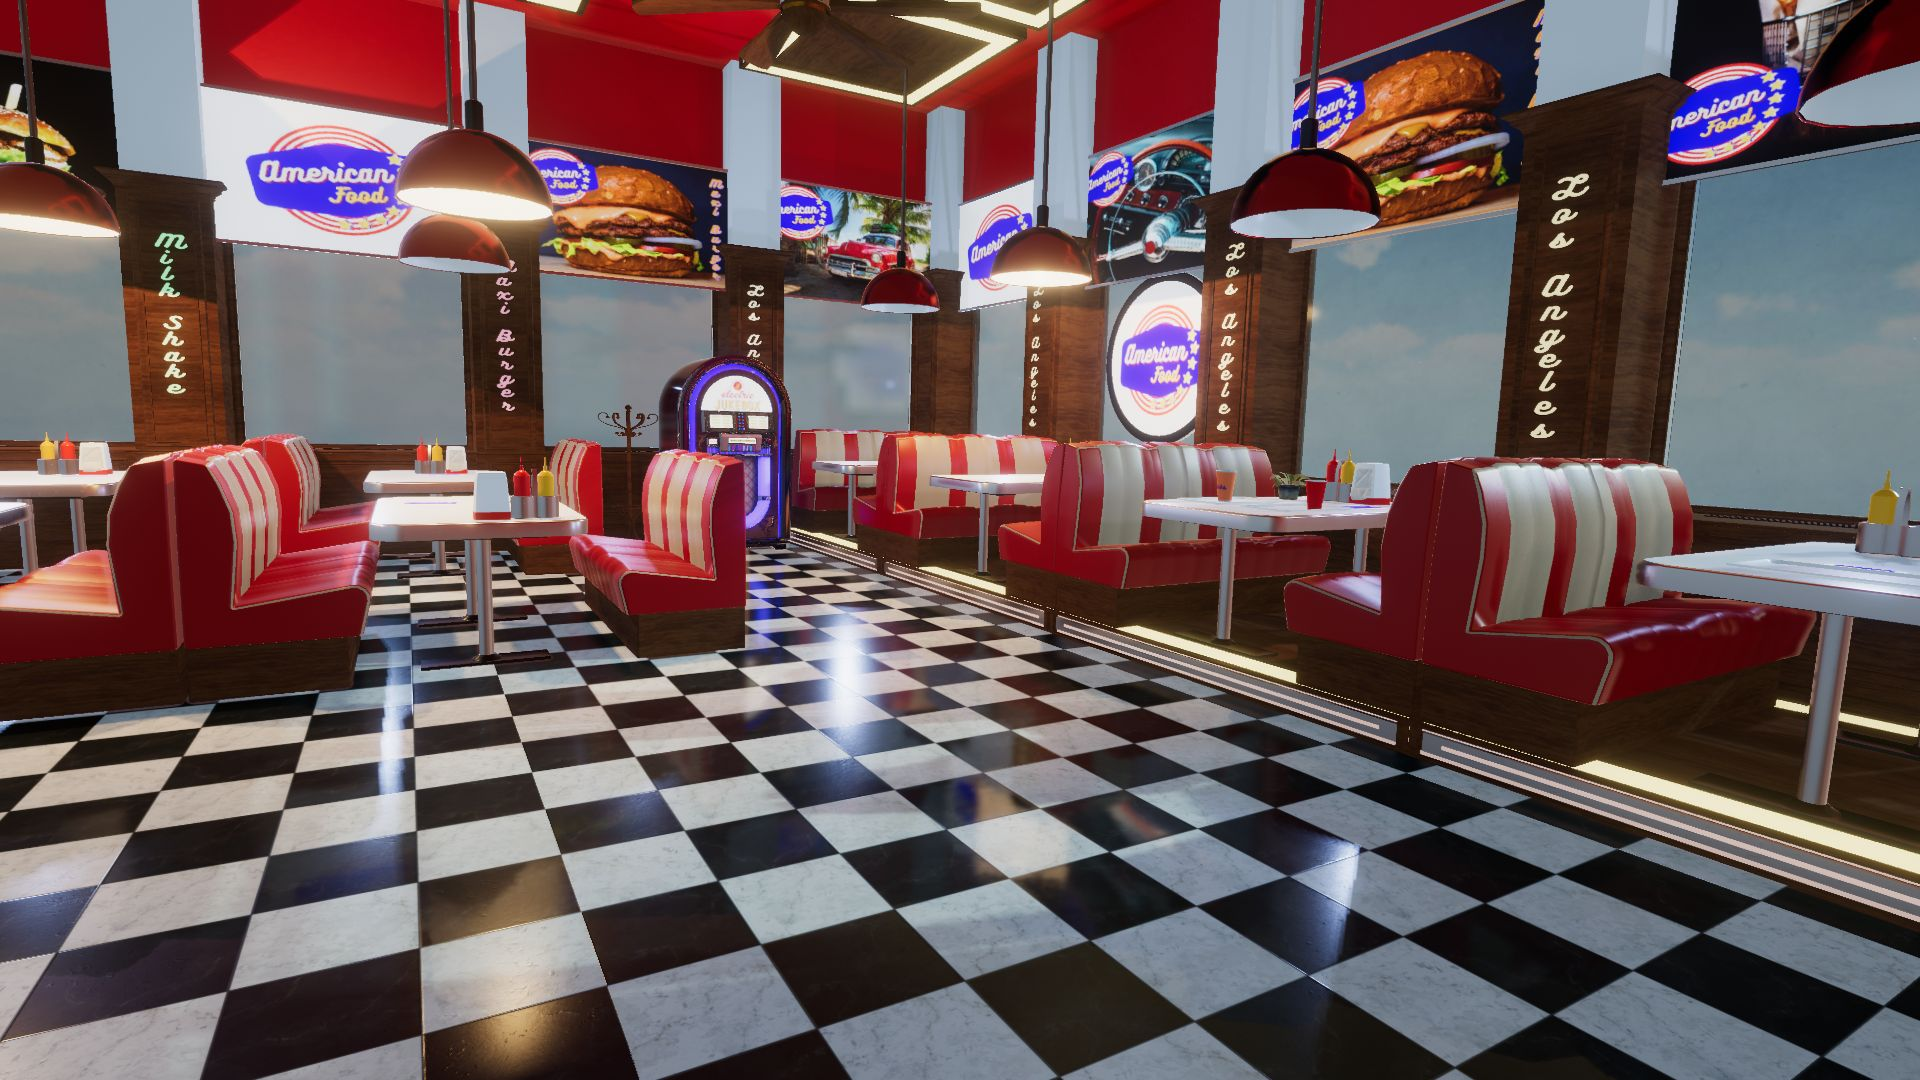 An image showing American Food Restaurant asset pack, created with Unity Engine.